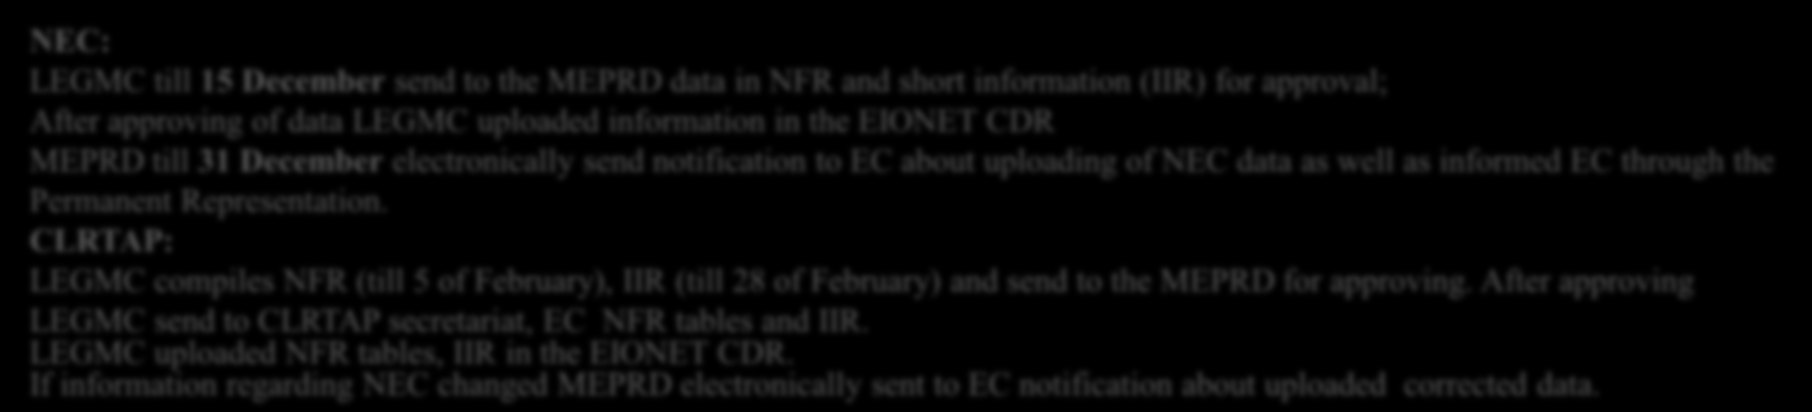 Deadlines and process of inventory Reporting under CLRTAP - IIR 15.03 preparation [1] Reporting under NEC NFR + short IIR 31.12 Reporting under CLRTAP - NFR 15.